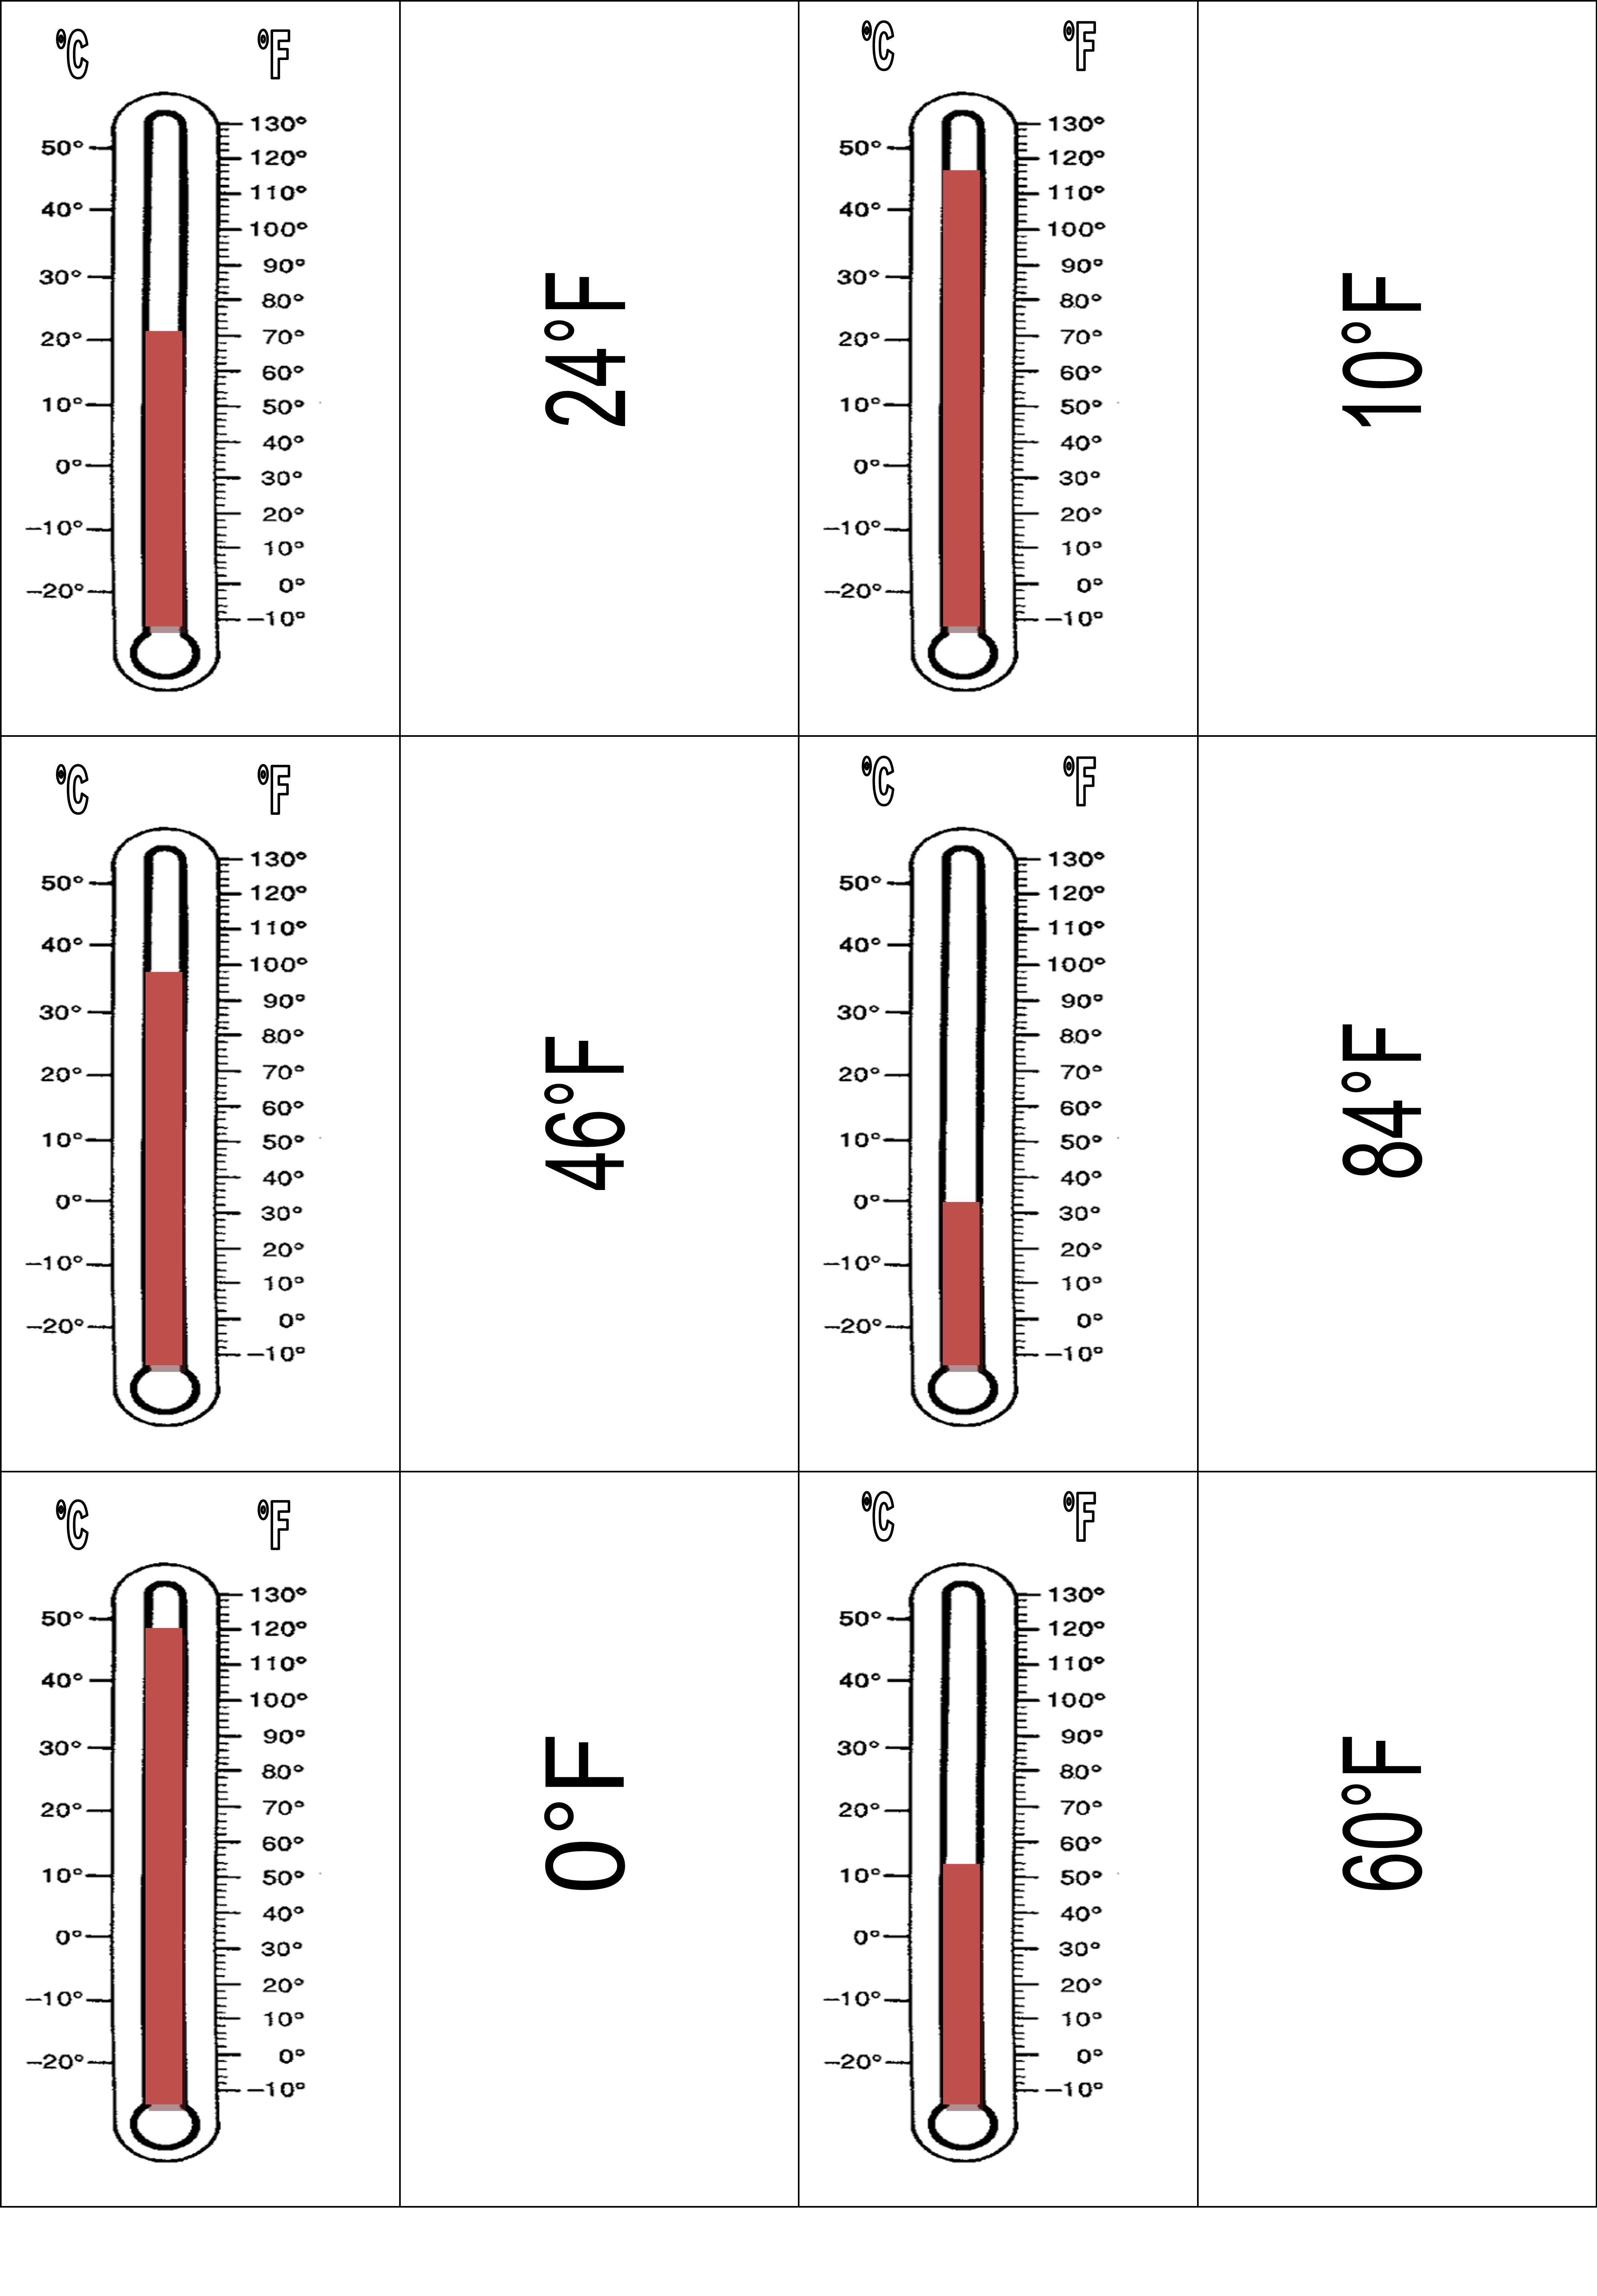 Part 1 Of 2 Temperature Matching Game